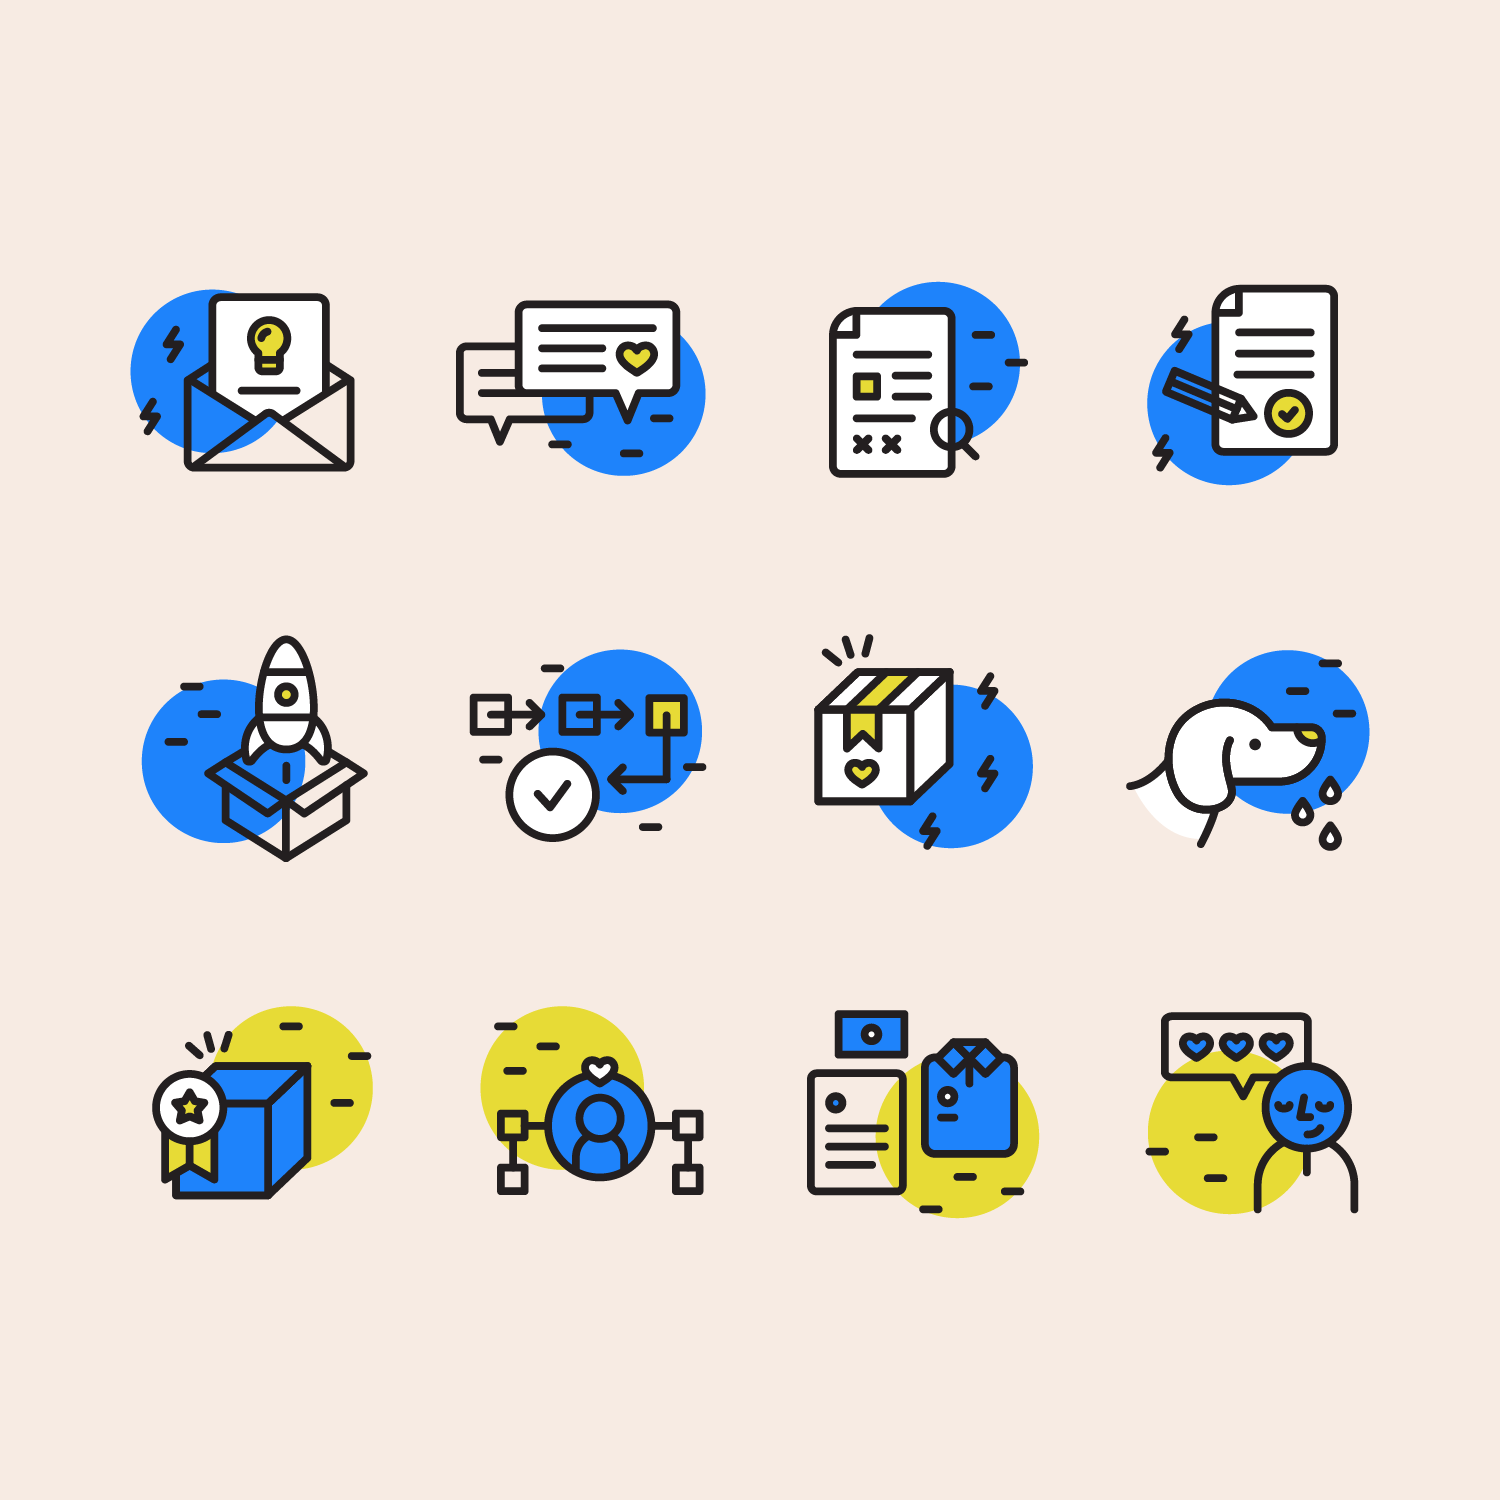 cad_dox_icons-01.png